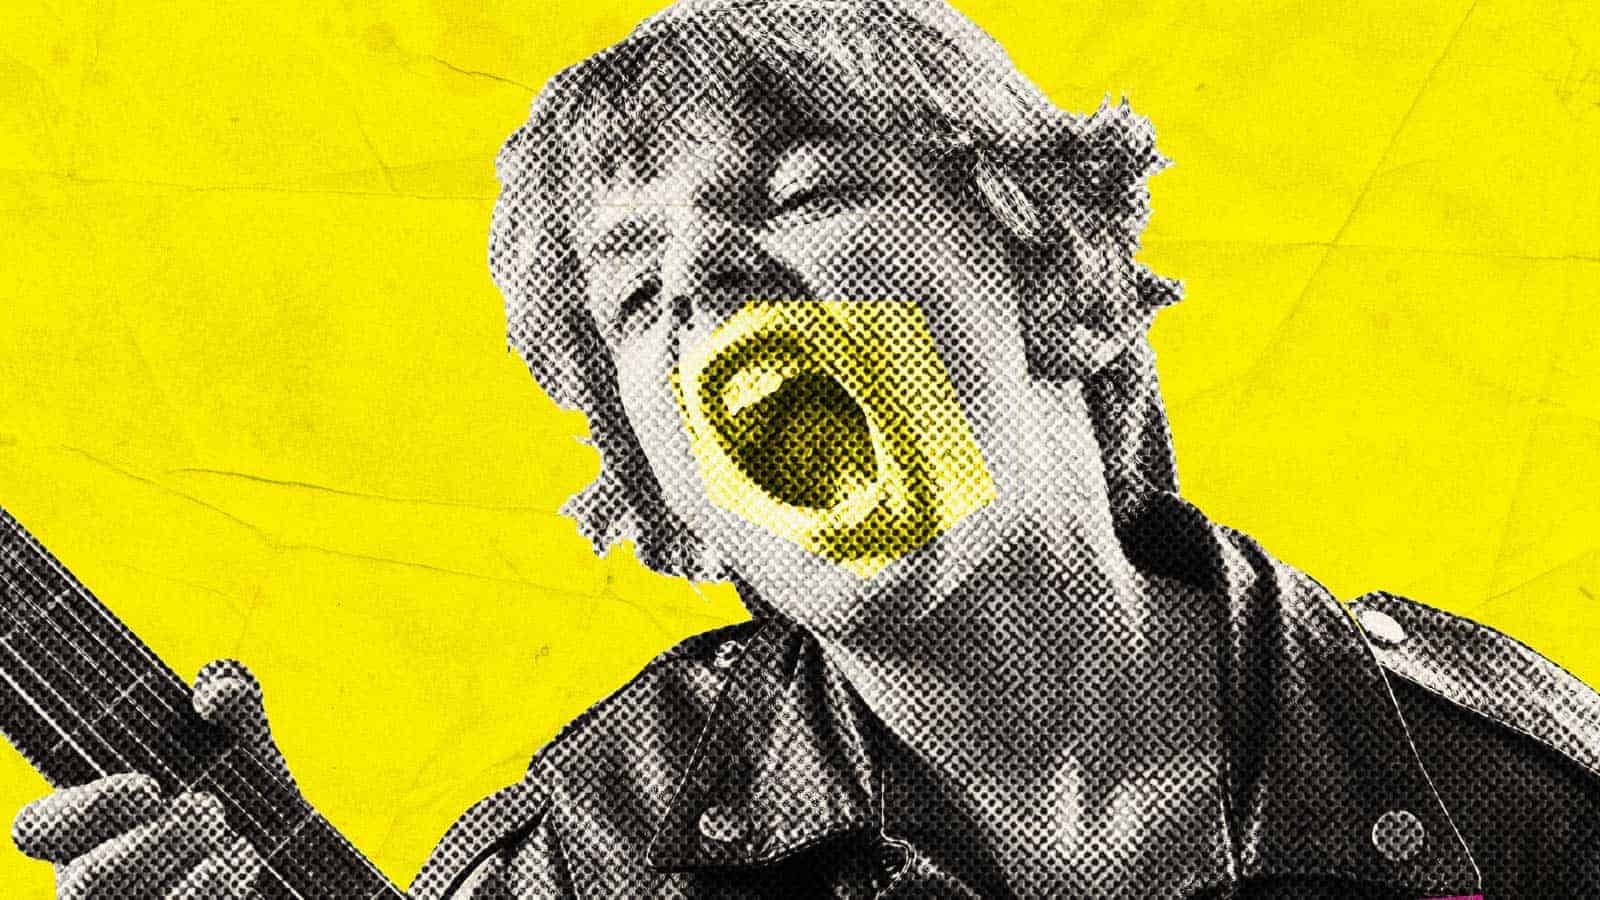 Poster design your own - How To Design A Punk Poster In Photoshop Tutorial By Piccia Neri